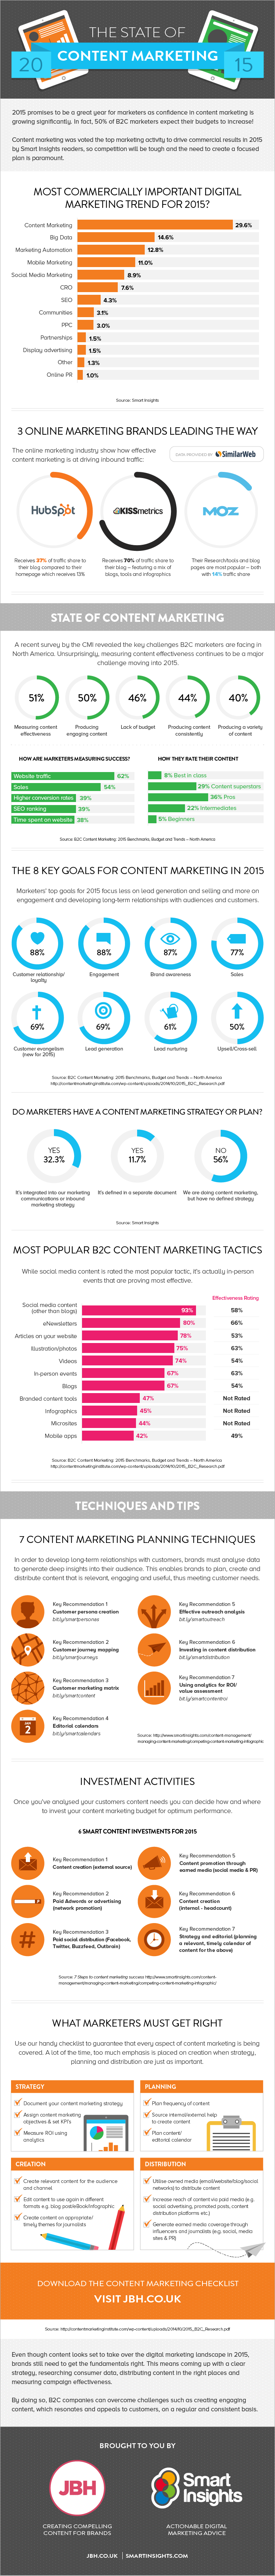 Infographie 177 - Content marketing